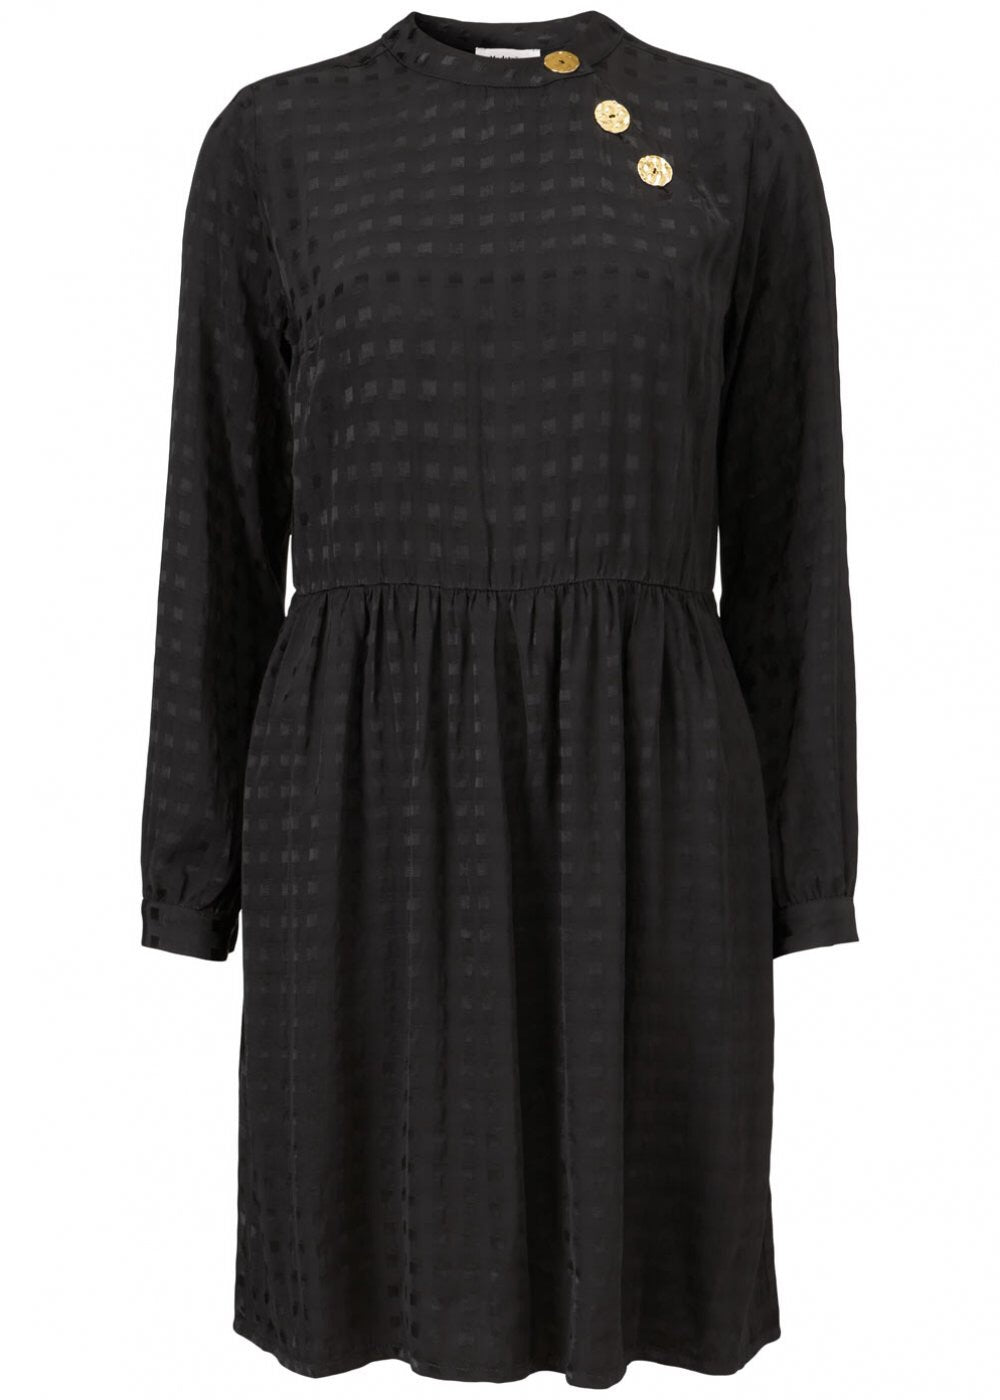 Modström Sullivan Dress Black - Mojo Independent Store